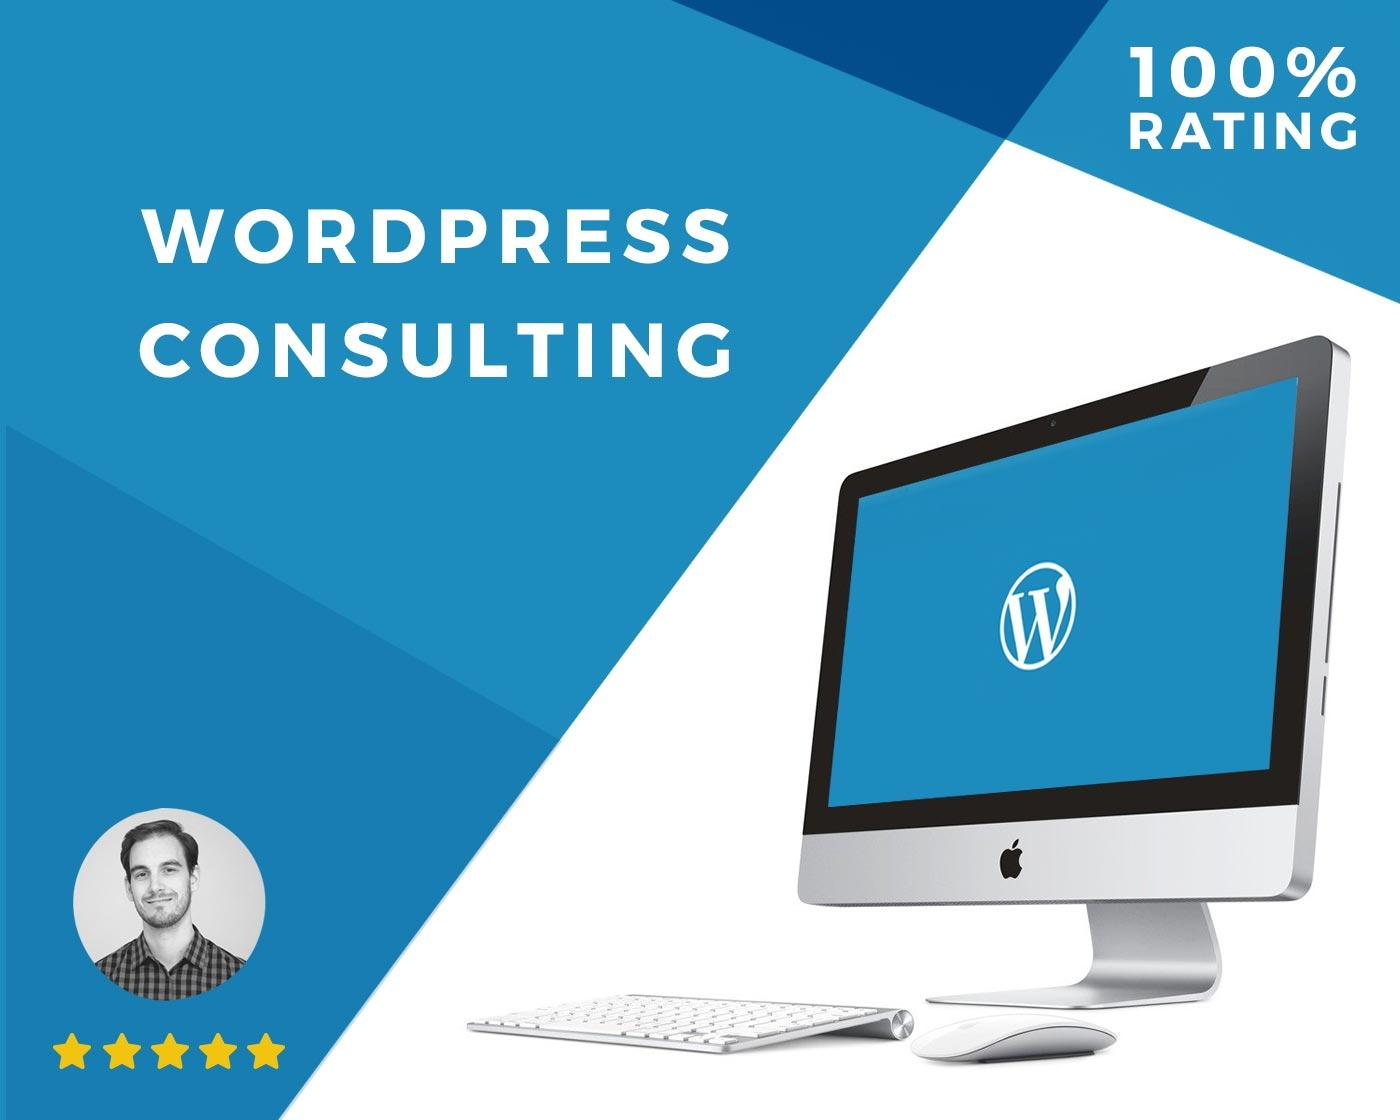 Wordpress Consulting by Ryan_Carter - 86123